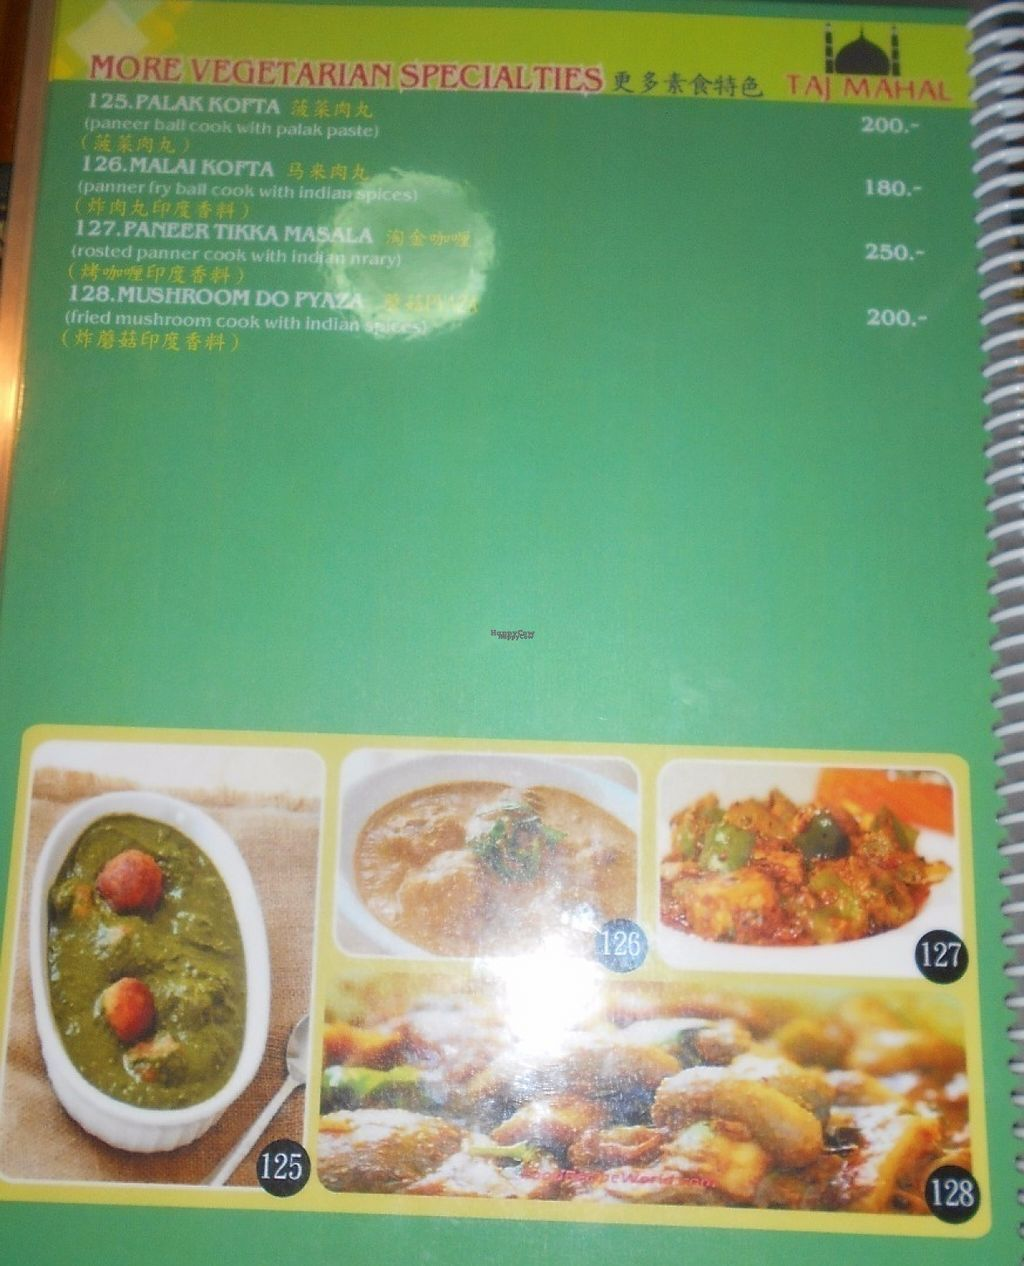 """Photo of Kashmir Indian Restaurant  by <a href=""""/members/profile/Kelly%20Kelly"""">Kelly Kelly</a> <br/>Kashmir Indian Restaurant <br/> August 5, 2016  - <a href='/contact/abuse/image/77951/165823'>Report</a>"""